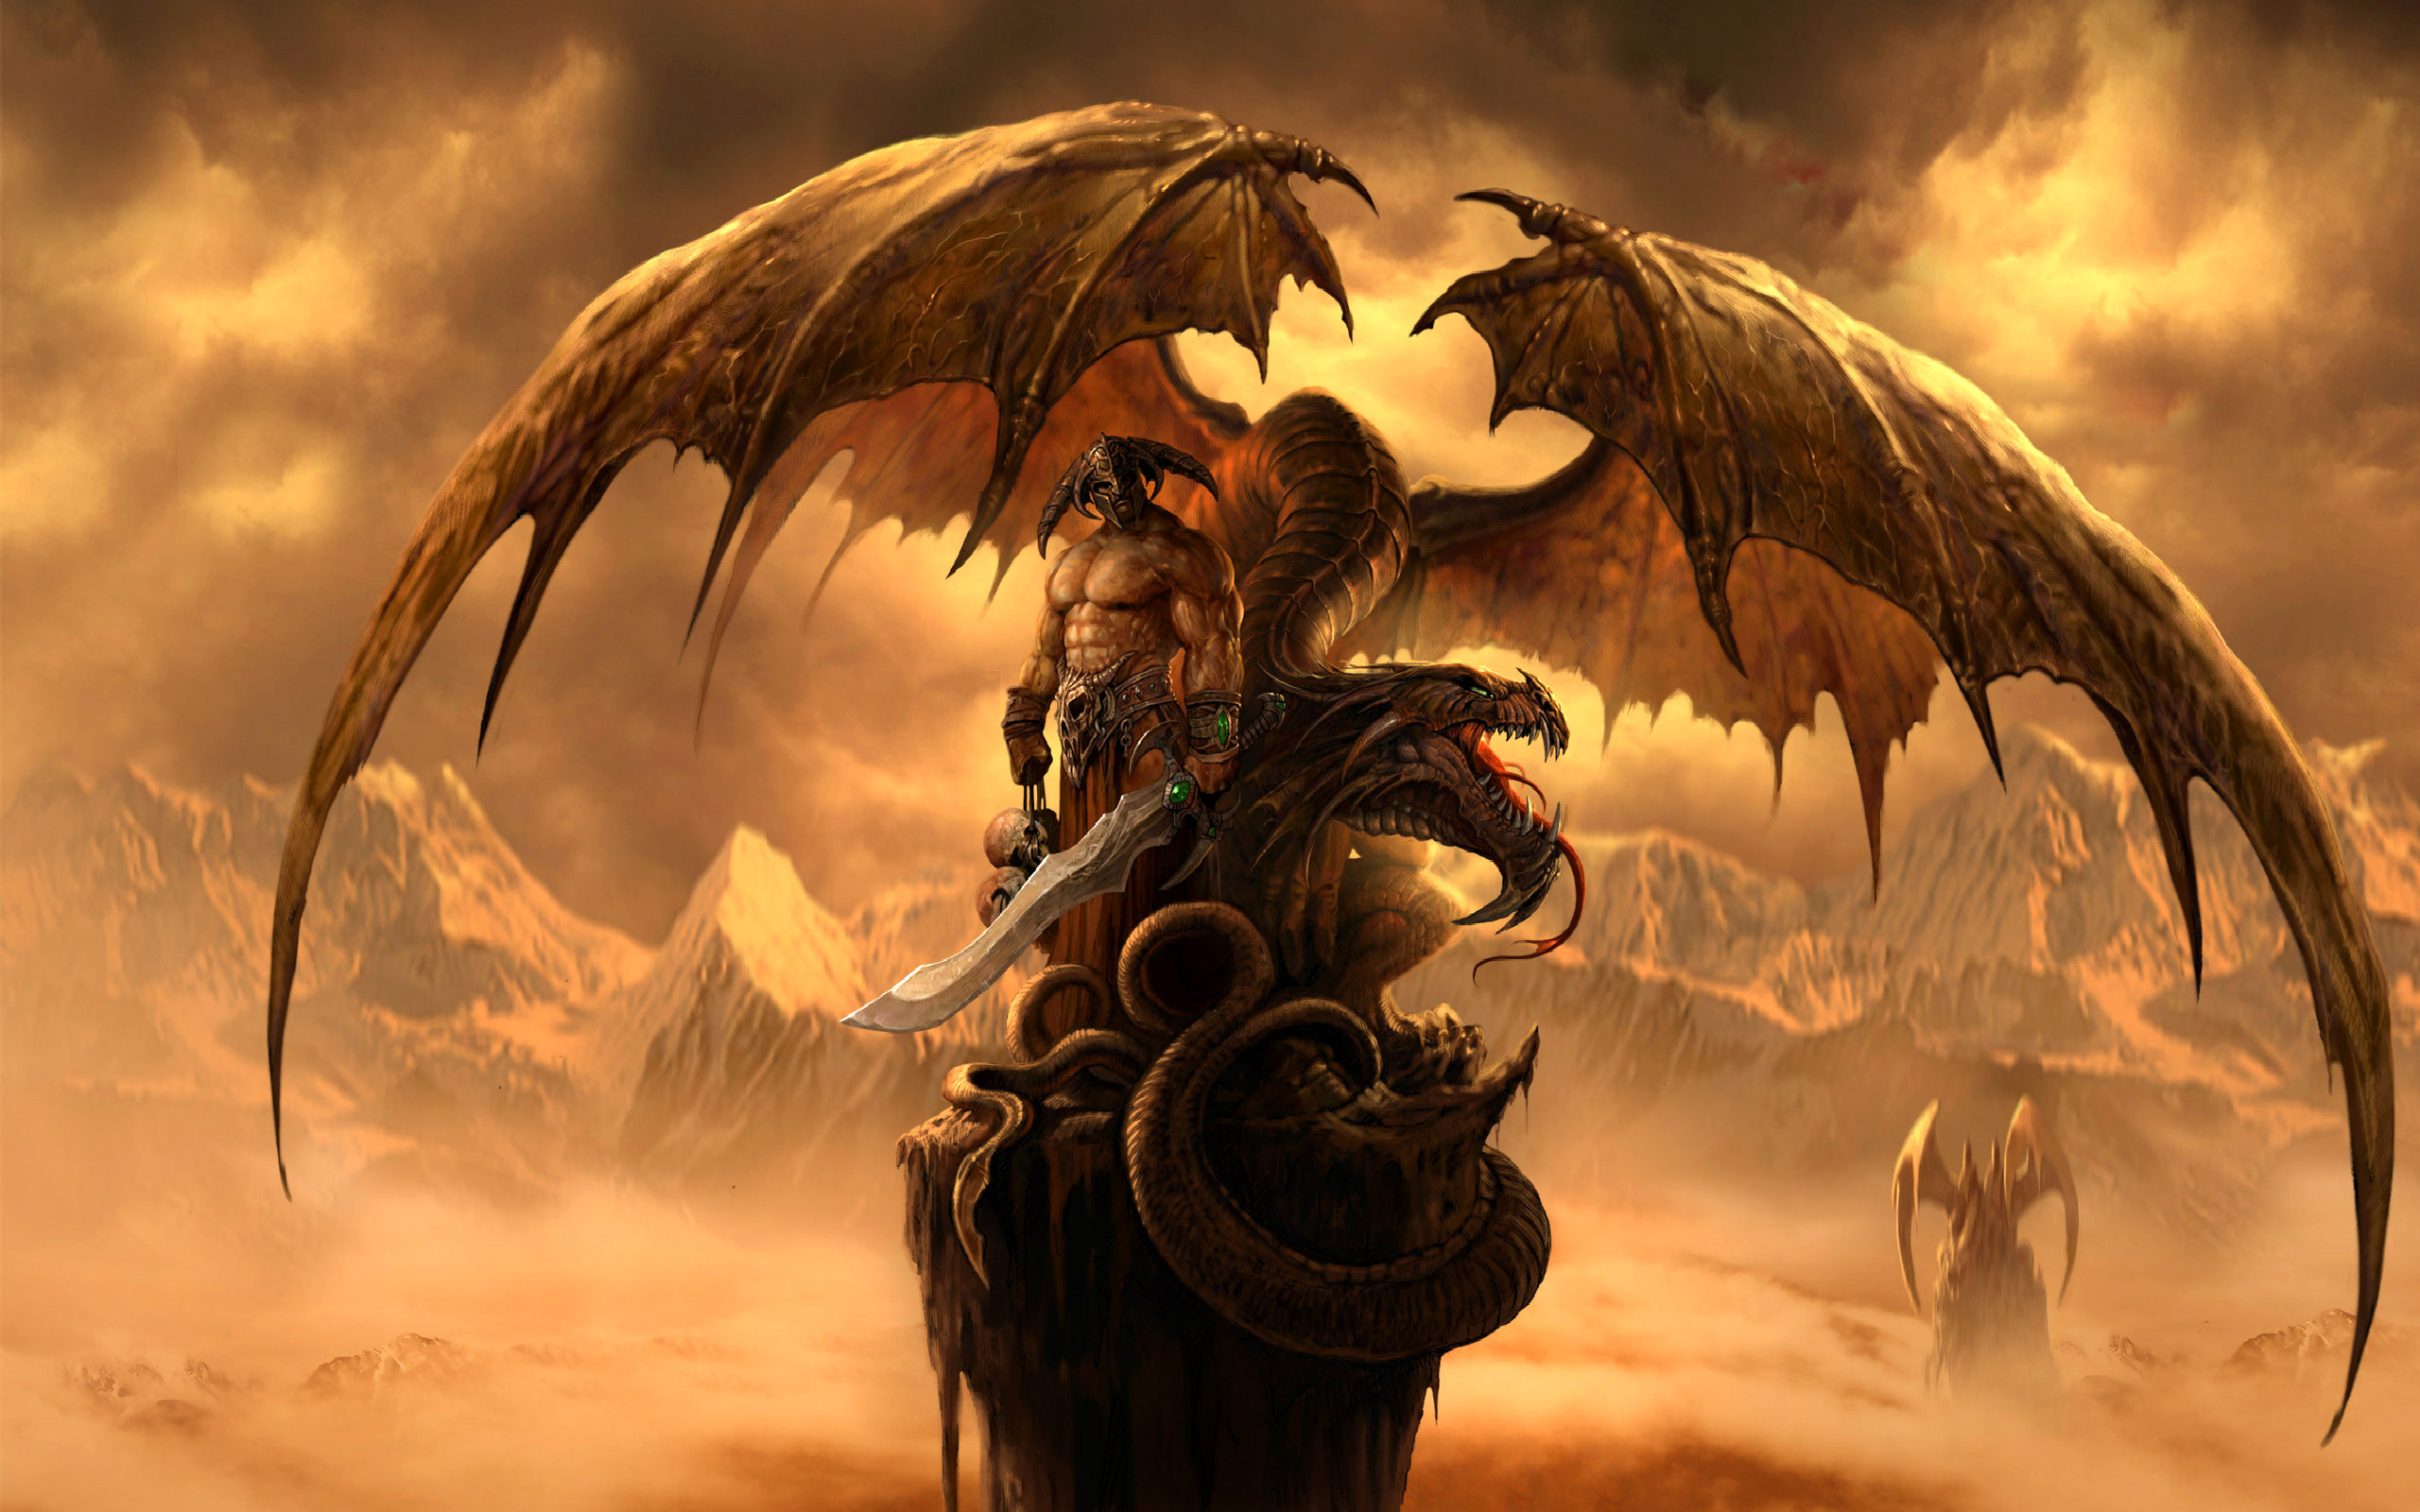 2560x1600 Fantasy Dragon Dragons Wallpaper 27155090